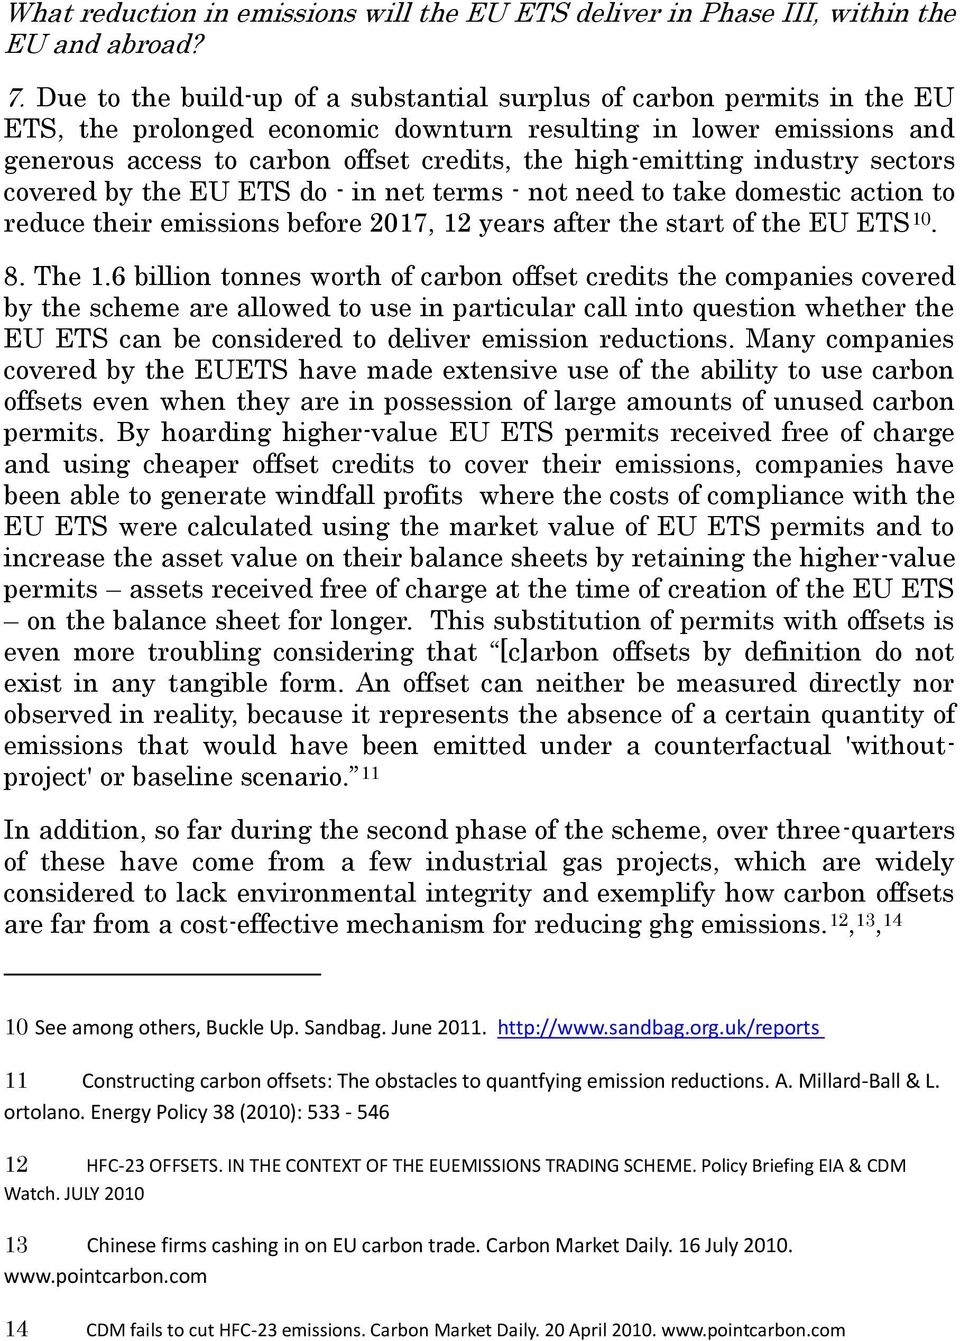 high-emitting industry sectors covered by the EU ETS do - in net terms - not need to take domestic action to reduce their emissions before 2017, 12 years after the start of the EU ETS 10. 8. The 1.